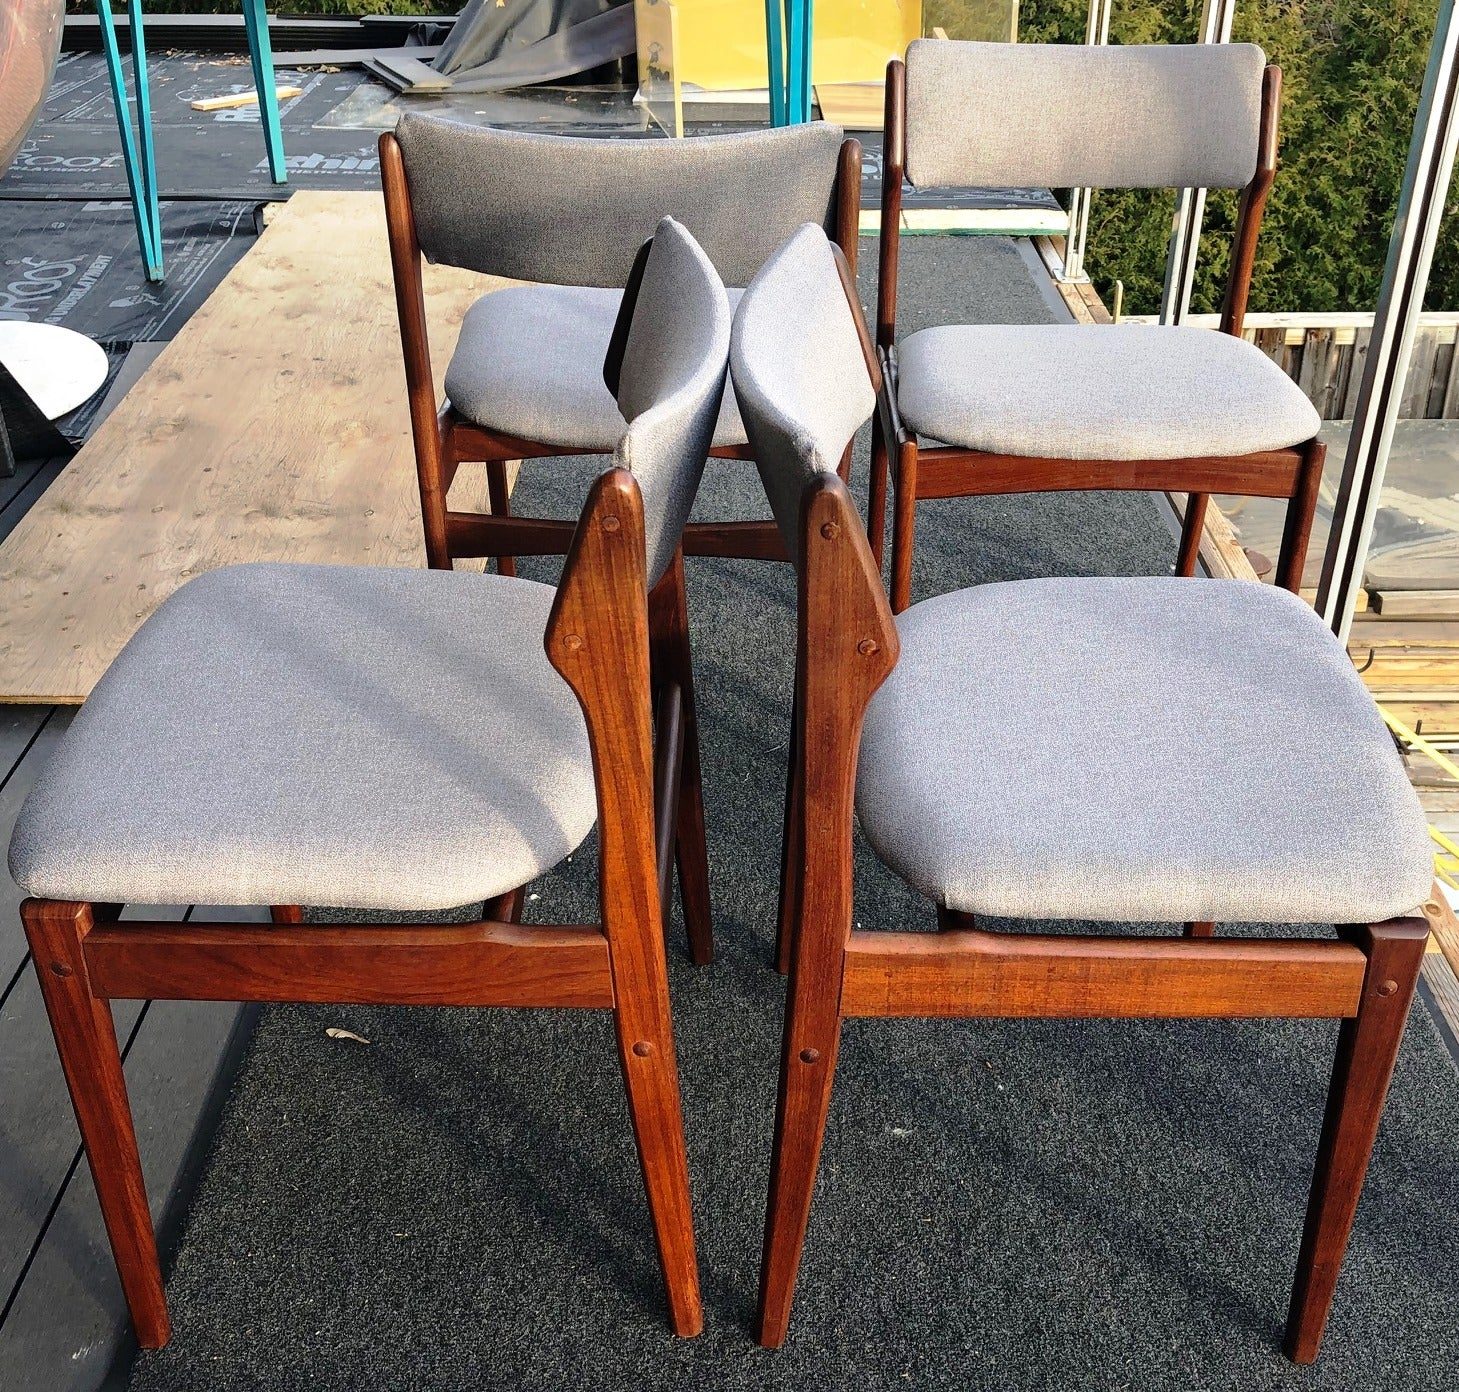 Prime 4 Danish Mcm Chairs W Floating Seats Restored Reupholstered In L Grey Maharam Each 225 Download Free Architecture Designs Griteanizatbritishbridgeorg